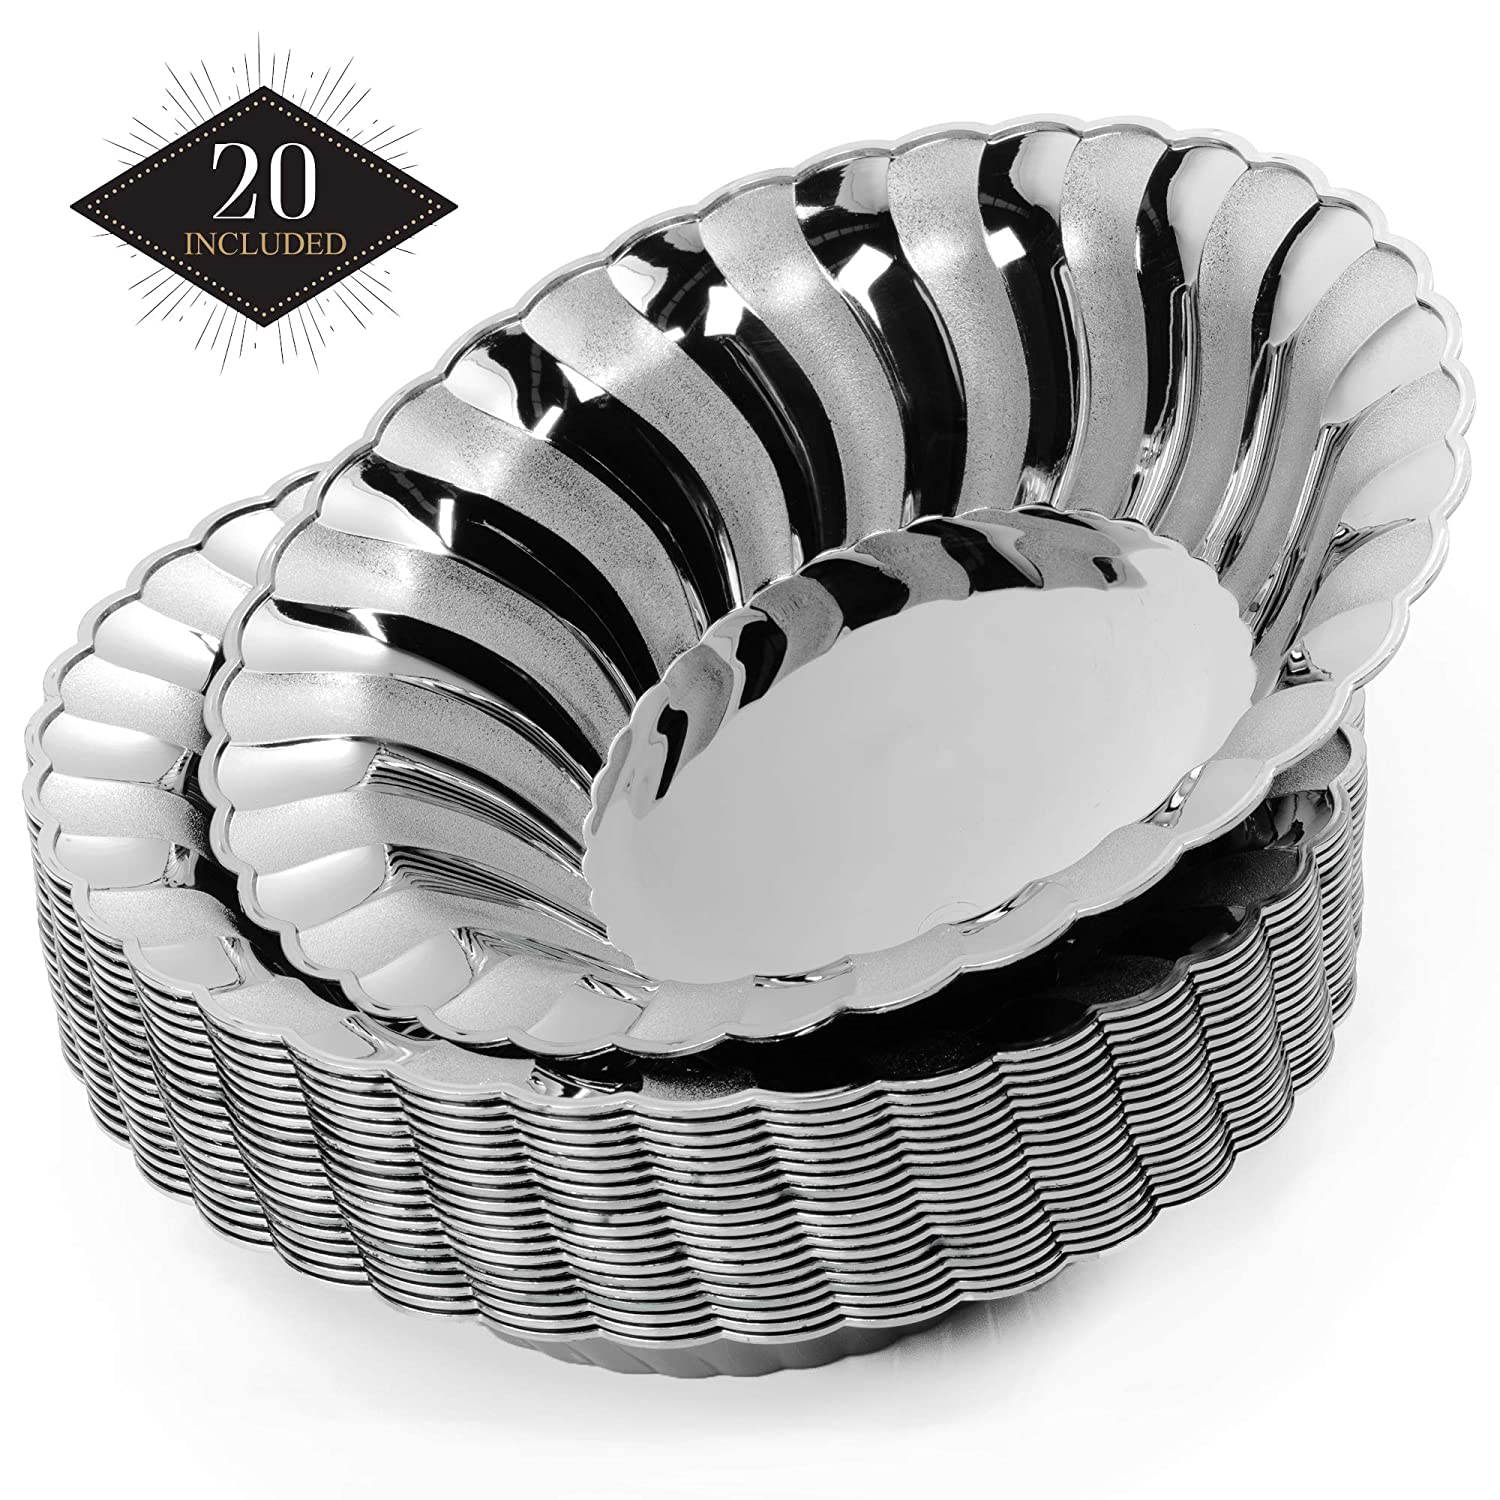 Elegant Silver Durable /& Reusable Silver Dinnerware| Perfect for Weddings Birthdays Bridal /& Baby Showers Events Parties. 18.5cm| Heavy Duty MATANA 20 Premium Disposable Plastic Bowls